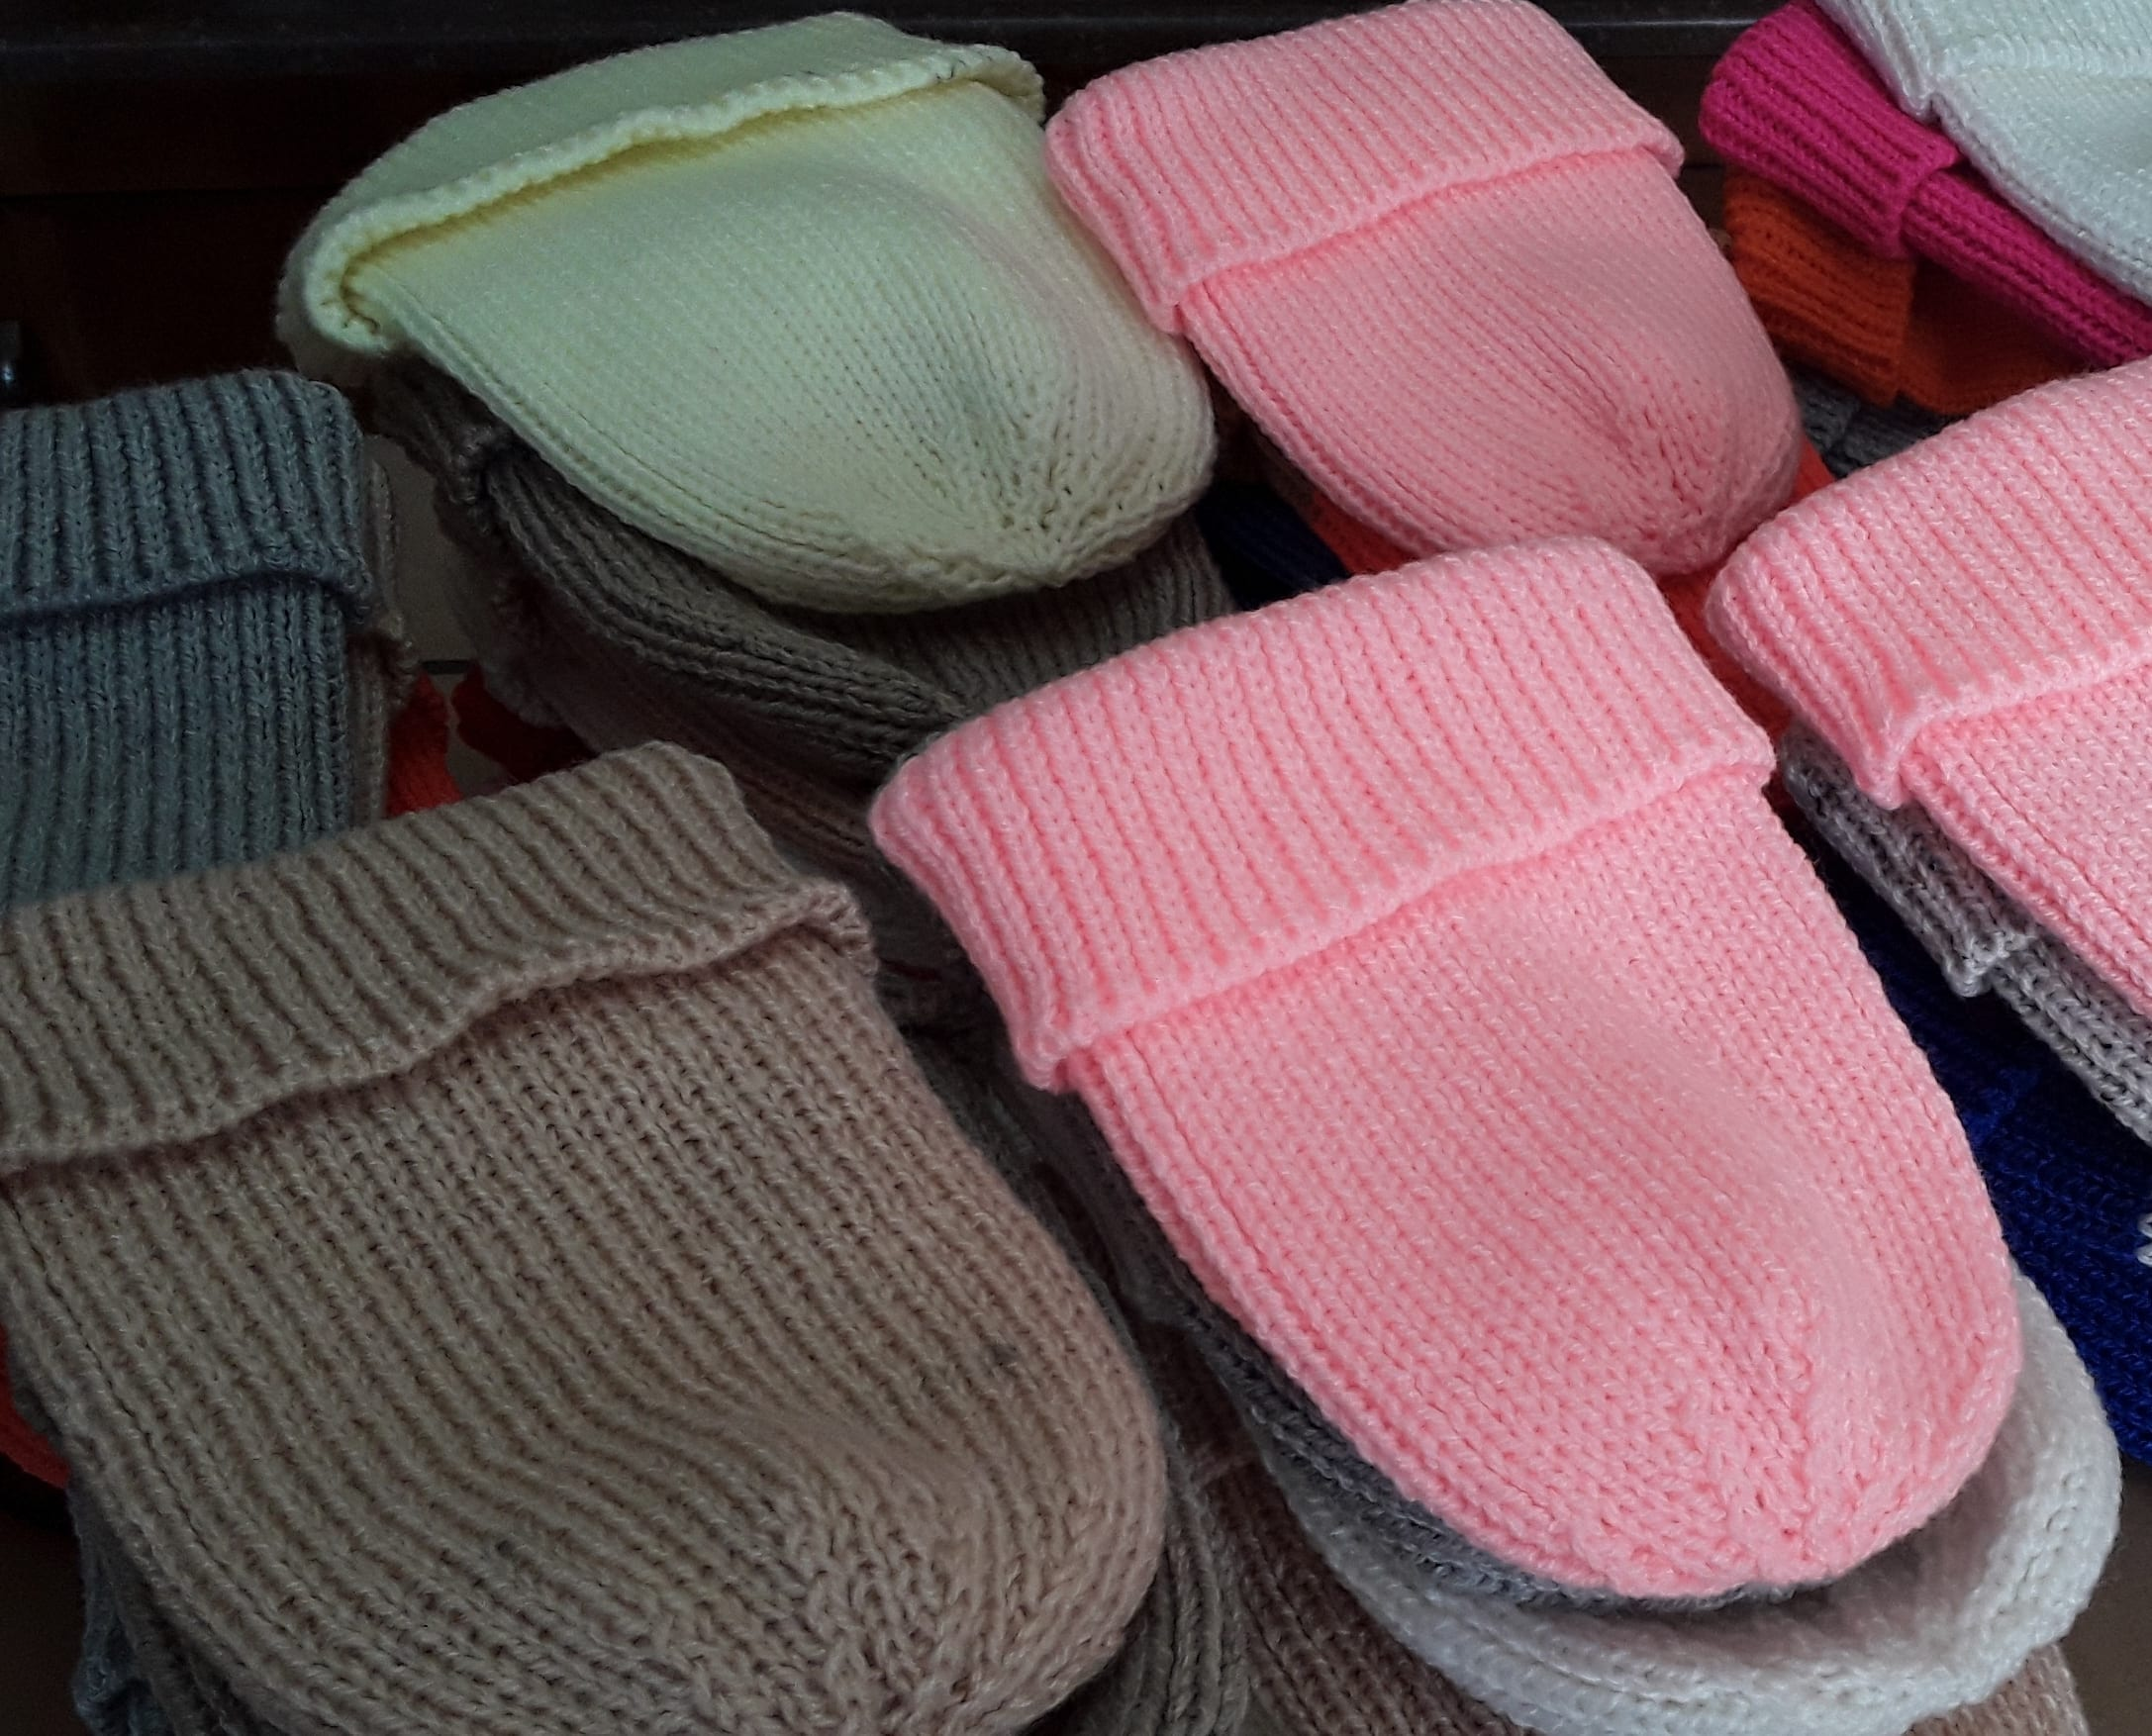 Beanies knitted and donated by Mrs Jacky Collingnon